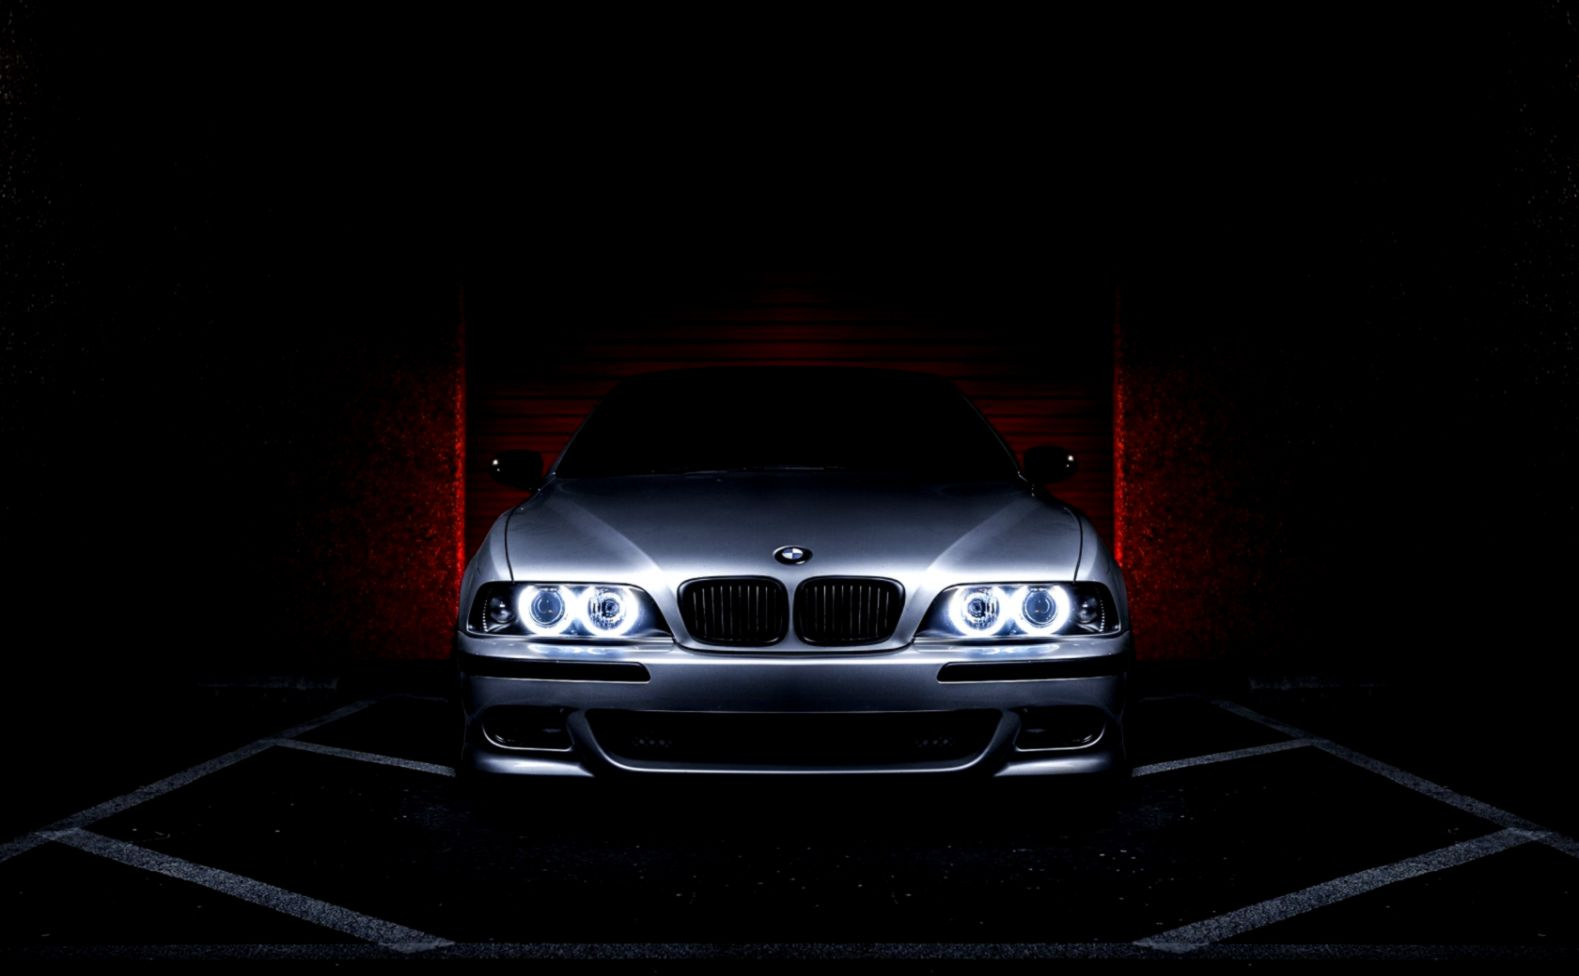 Bmw E39 Wallpapers Top Free Bmw E39 Backgrounds Wallpaperaccess